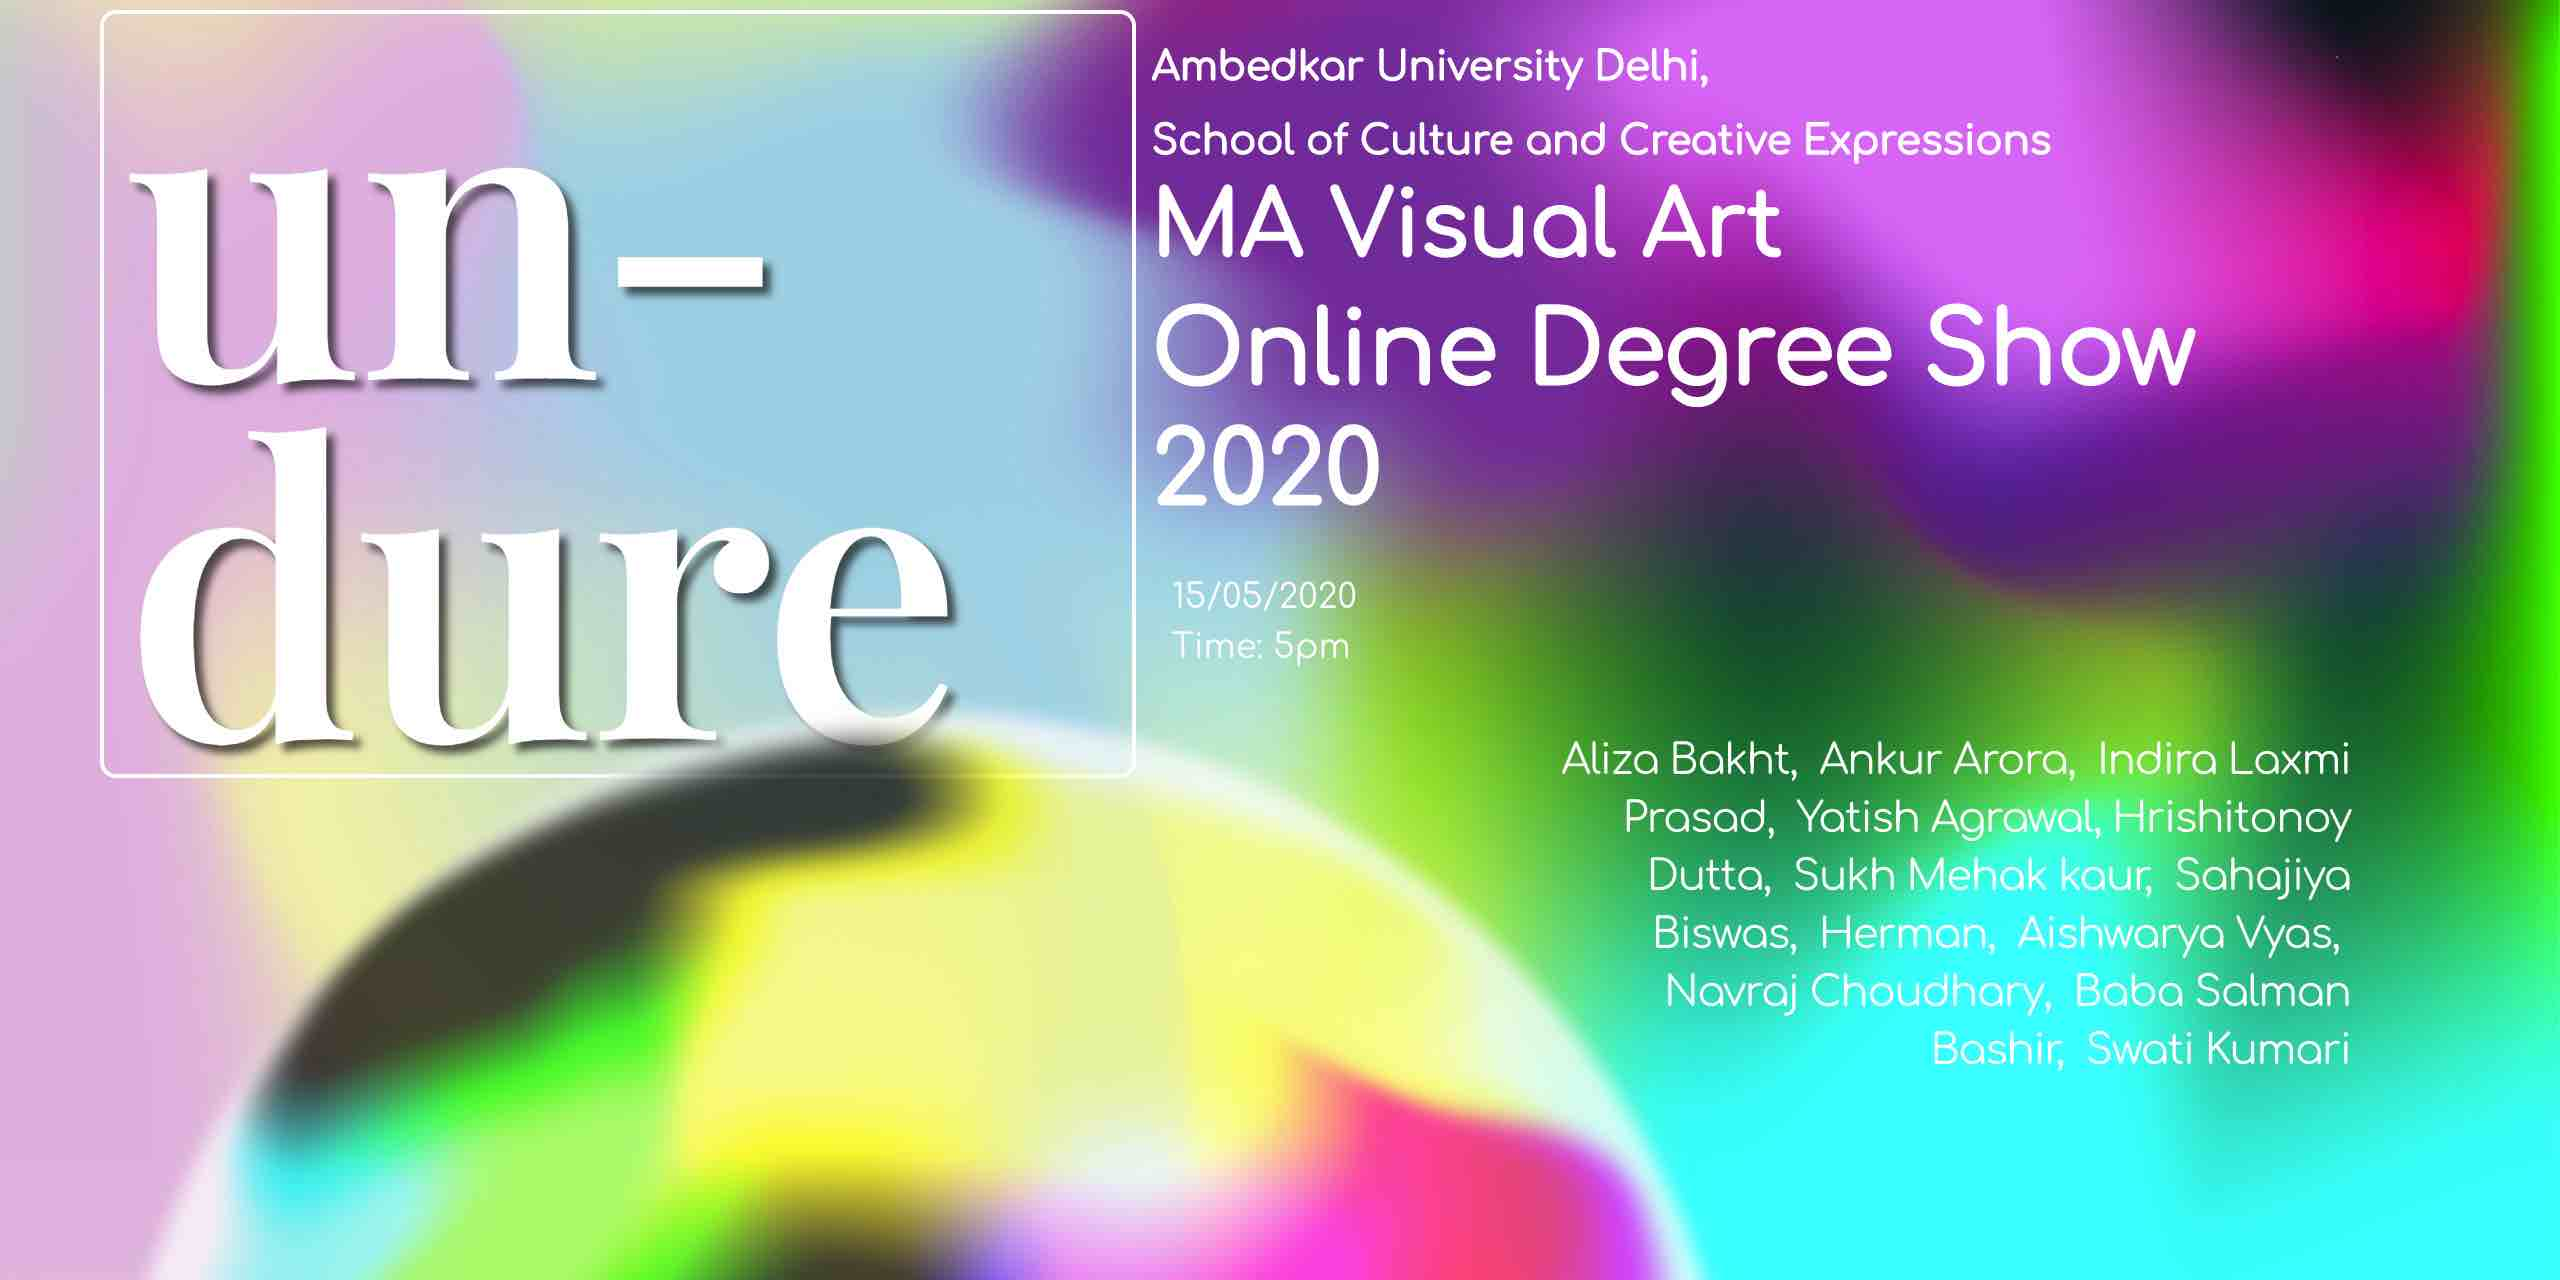 Online Degree Show of MA Visual Art batch 2018-20